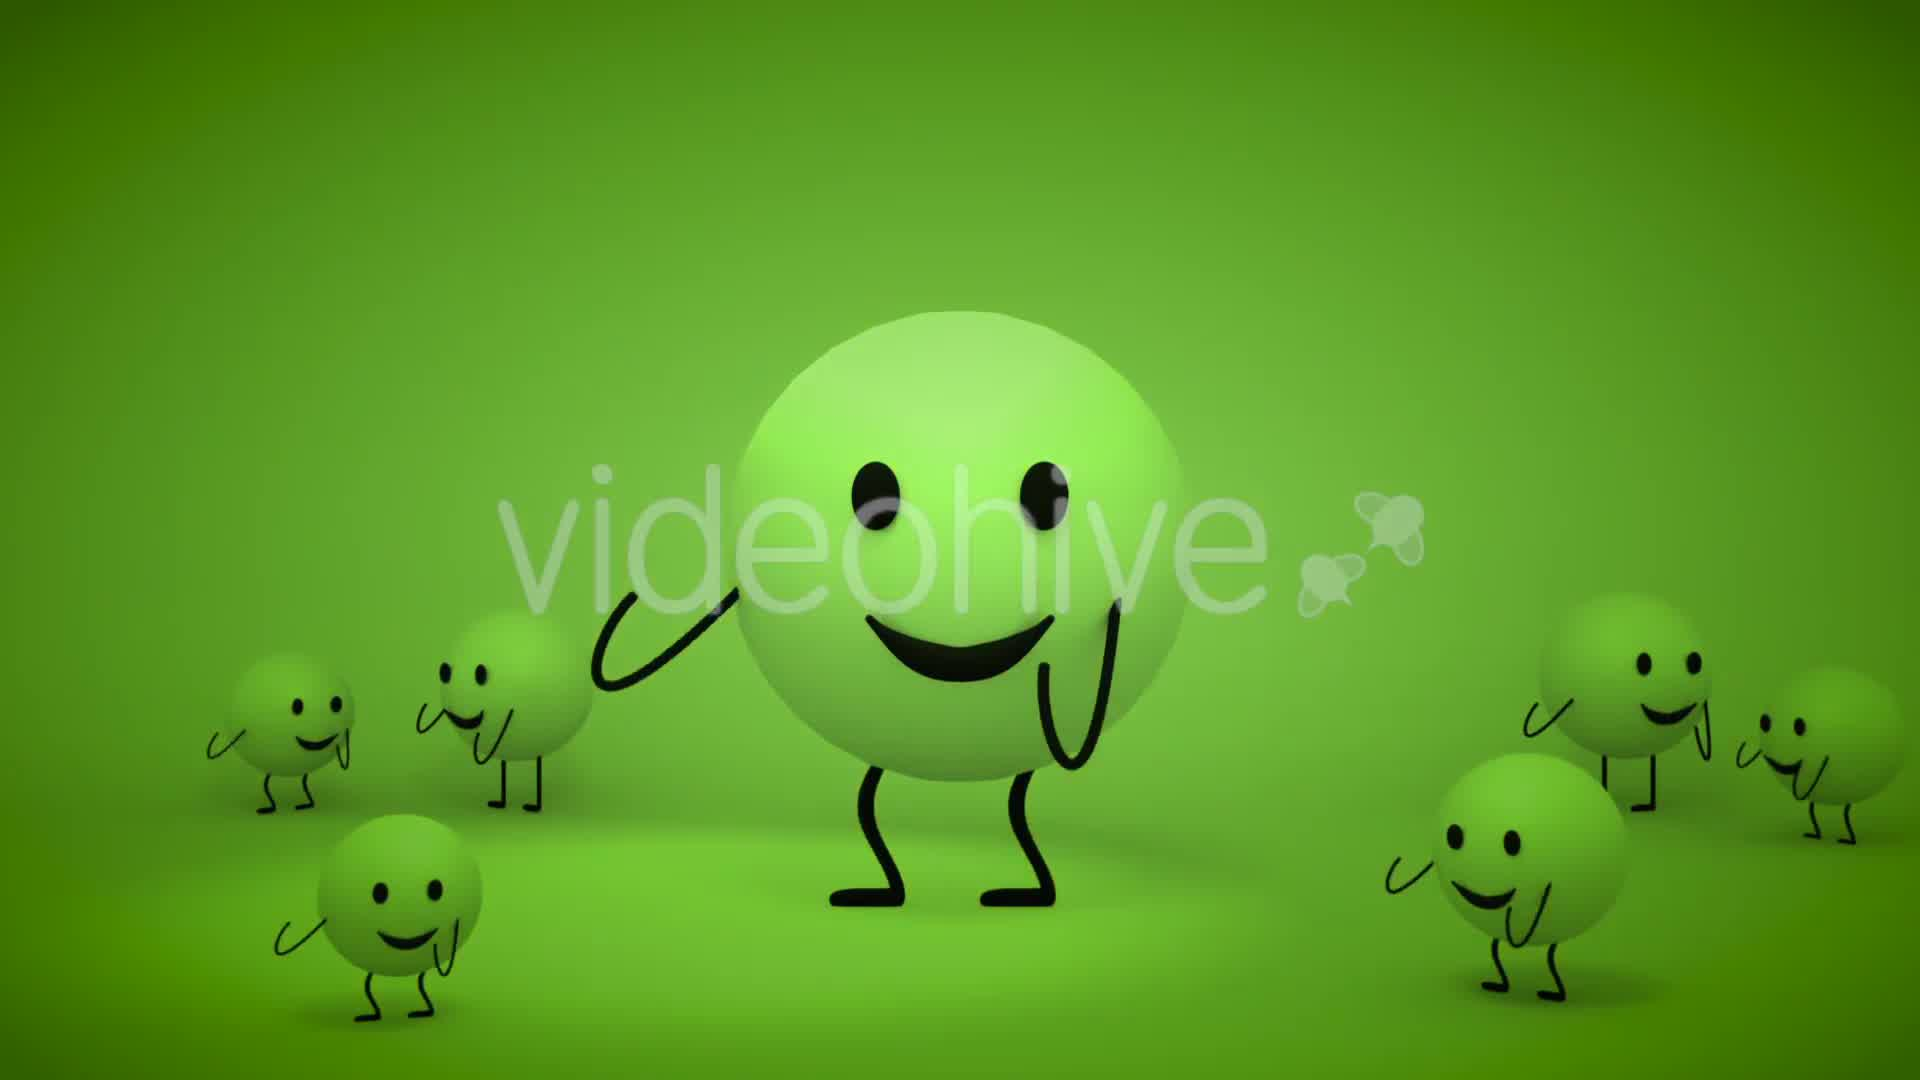 3D Toon Yellow Emoji Dance - Download Videohive 17843338